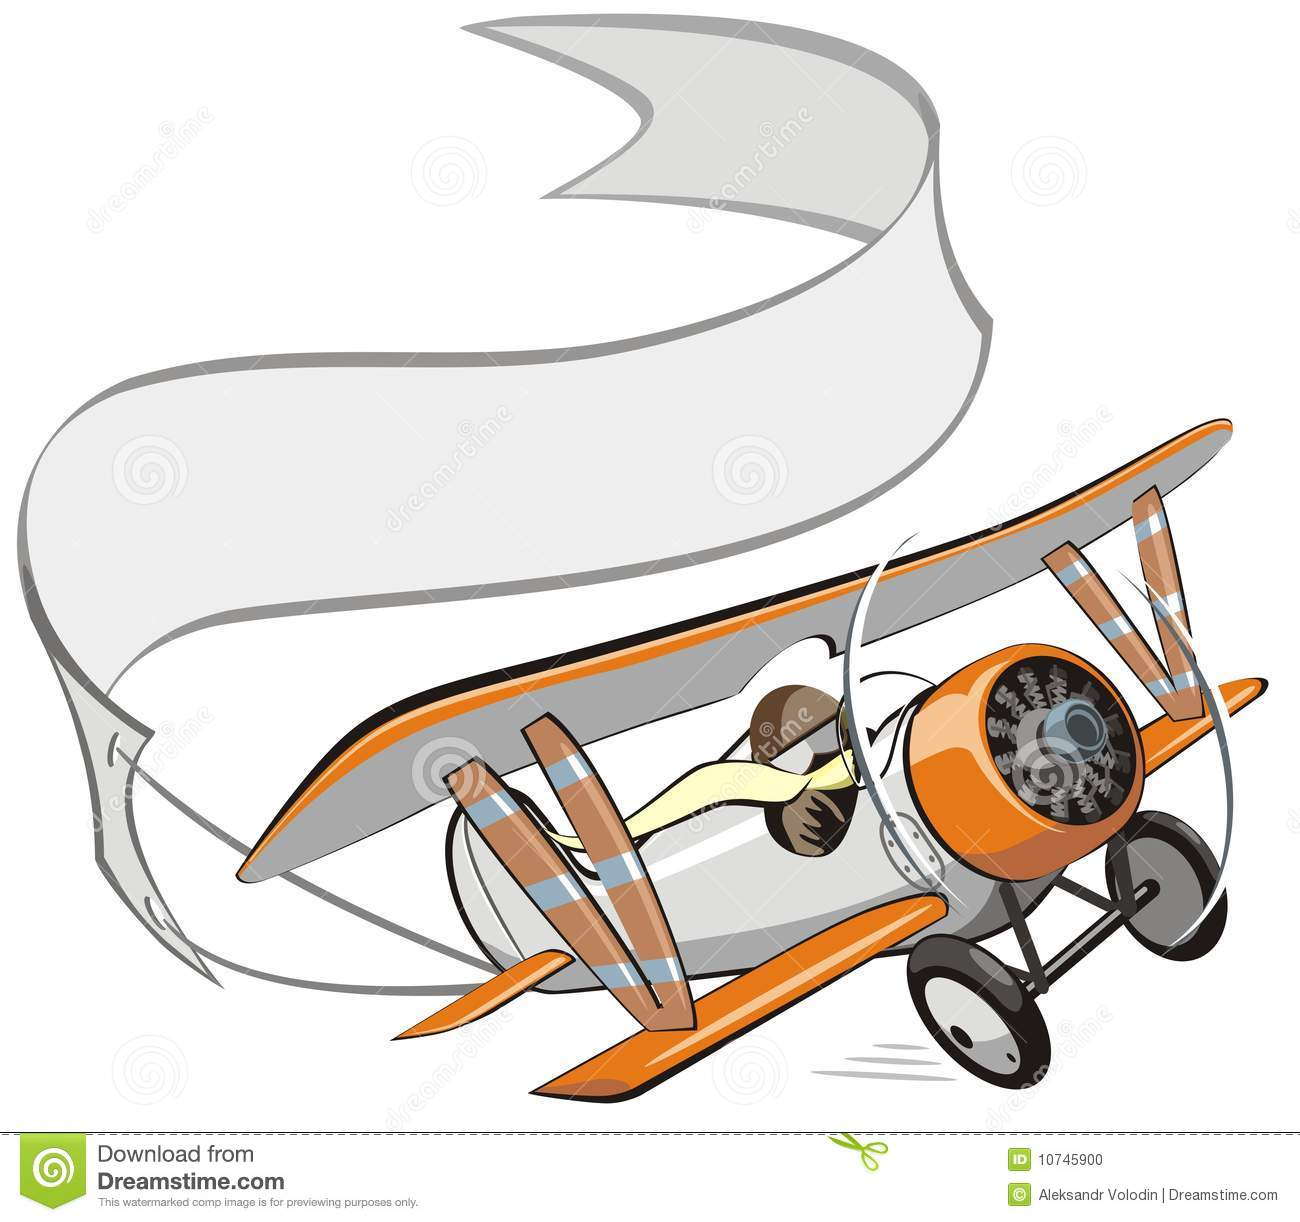 Blue Banner   Clipart additionally Buy 2 Get 1 Free Filled Vintage Aviation further 80 Cool Airplane Tattoos besides Biplane also Biplane Silhouette 1212142. on old cartoon plane with banner